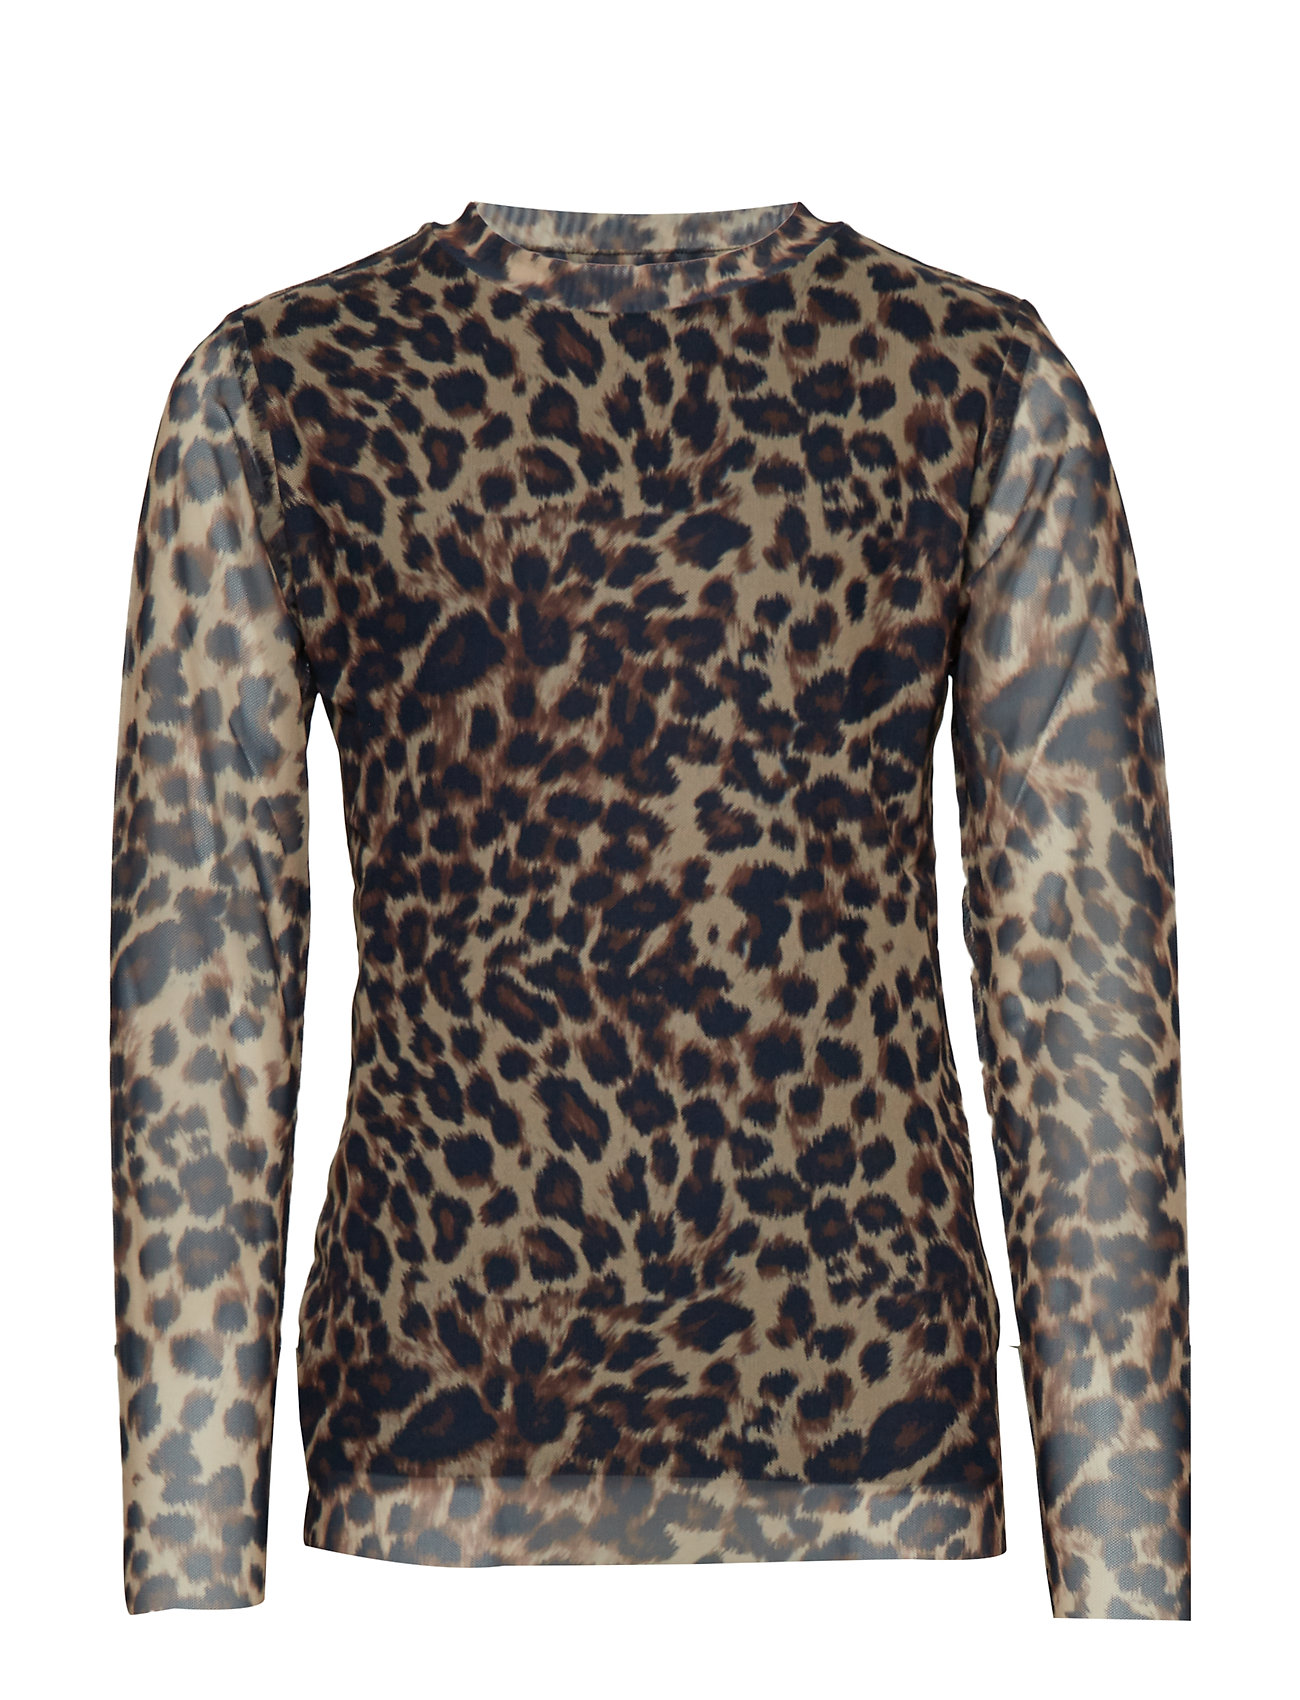 The New MARLEY SCHOOL L_S TOP - LEOPARD